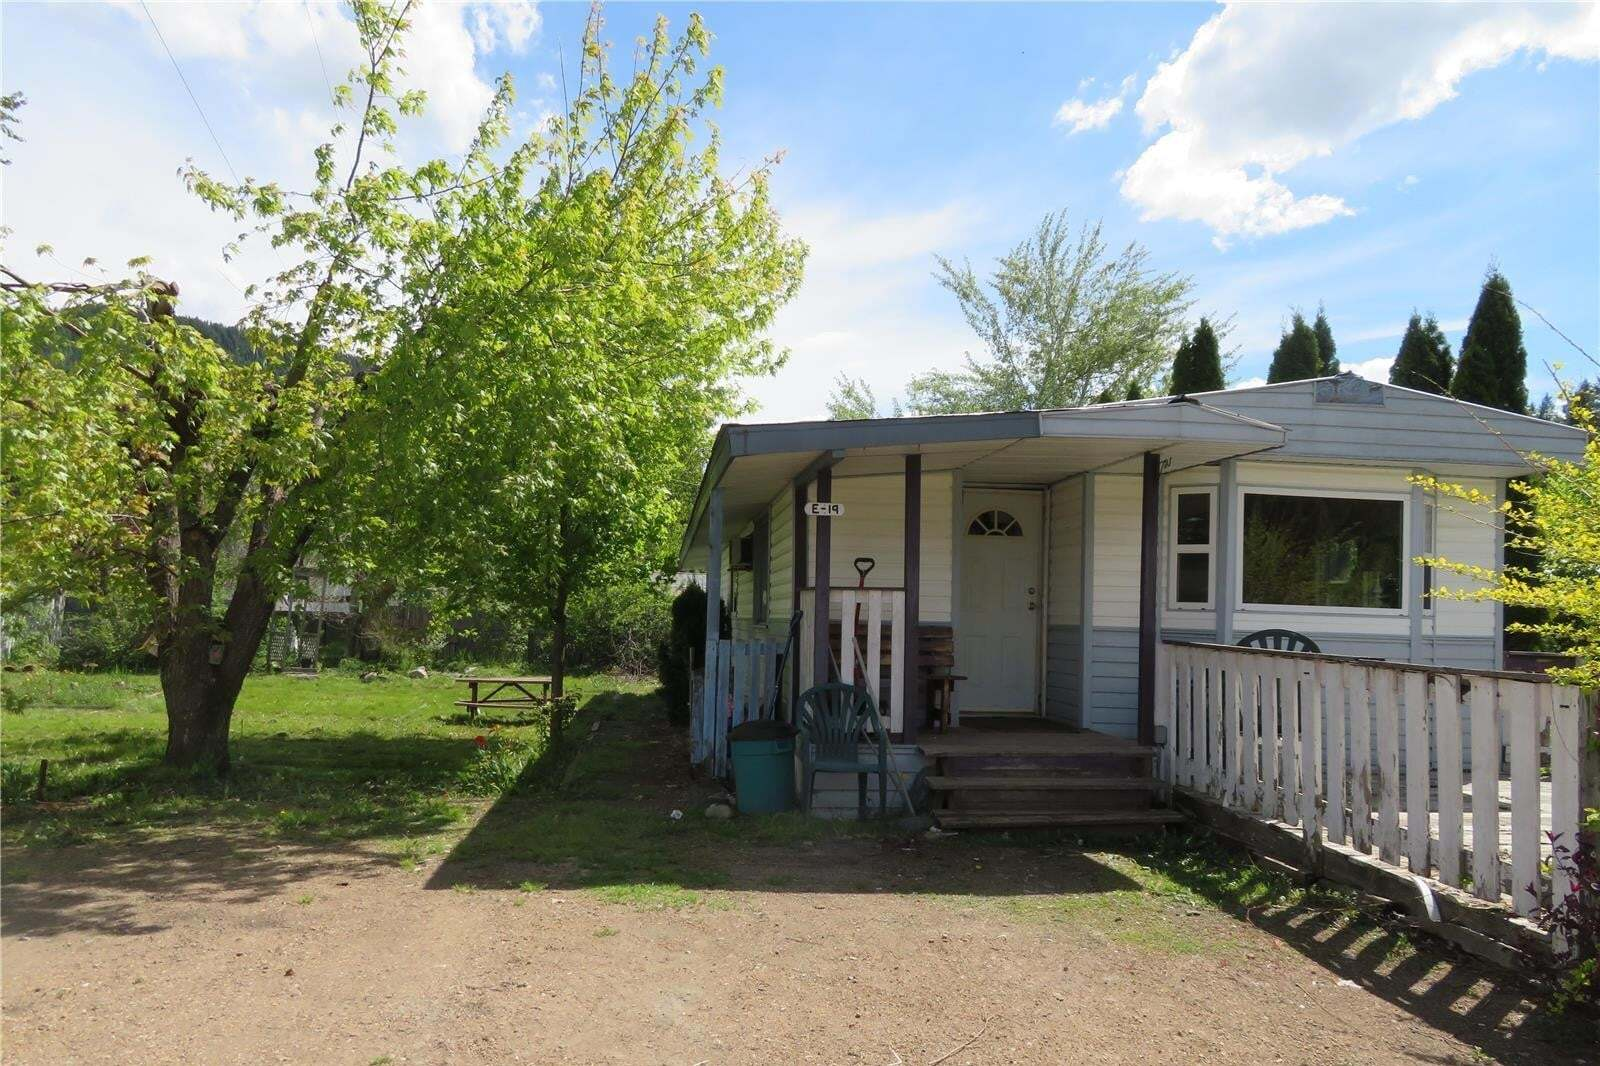 Home for sale at 446 Mabel Lake Rd Lumby British Columbia - MLS: 10205314